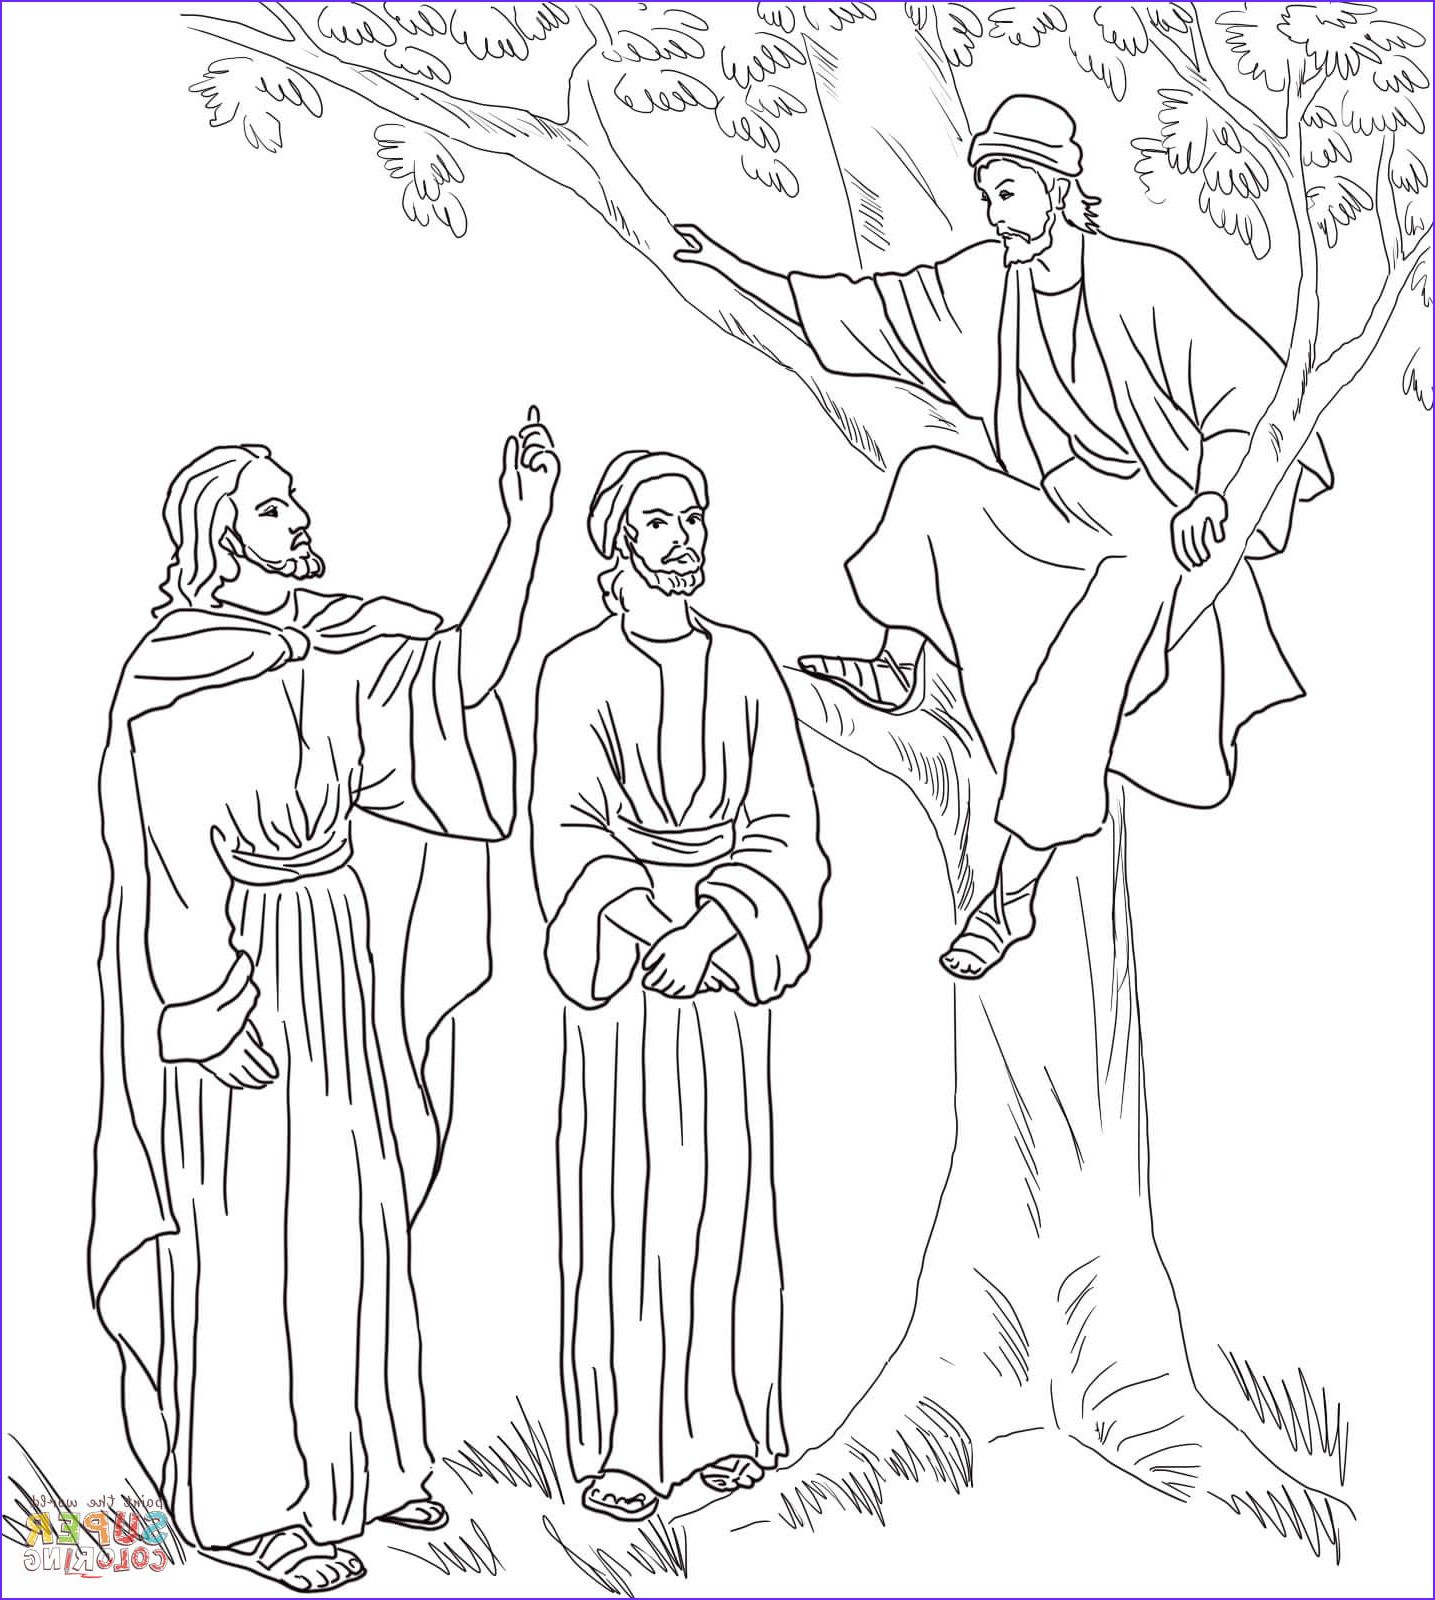 Jesus And Zacchaeus Coloring Page Coloring Home Coloring Pages Coloring Pages For Teenagers Coloring Pages For Kids